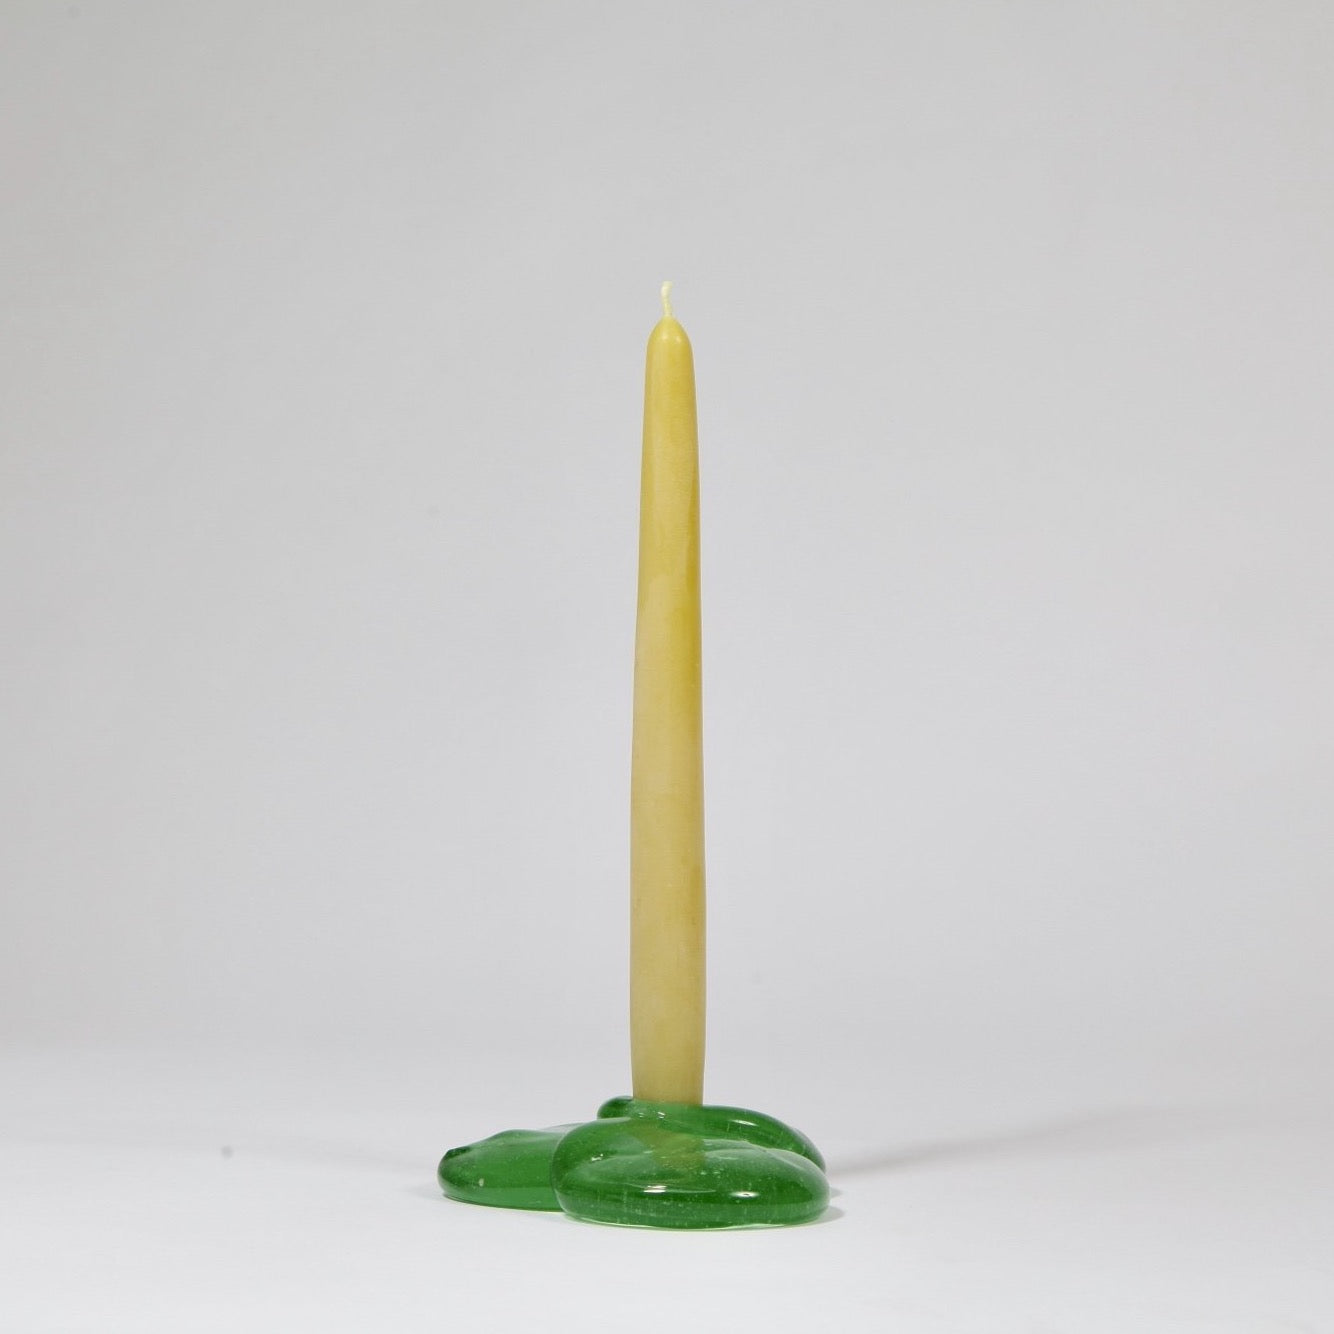 Candle Holder | made from microwave glass waste - THE HOME OF SUSTAINABLE THINGS